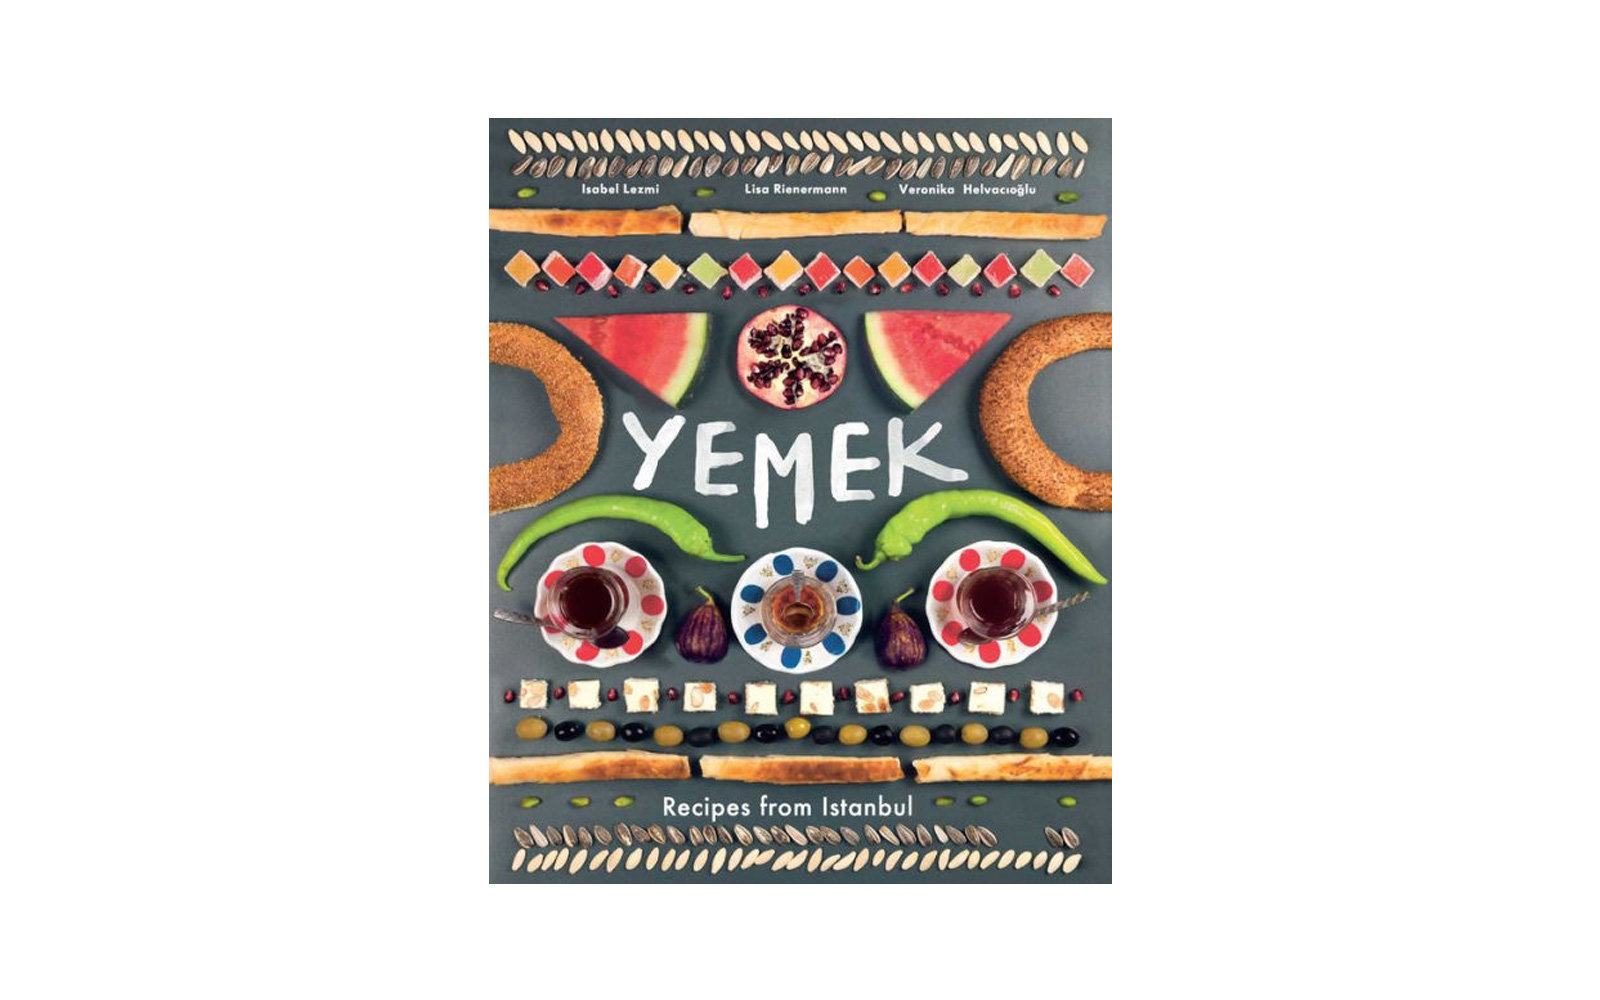 Yemek Recipes from Istanbul, by Isabel Lezmi, Lisa Rienermann, and Veronika Helvacioglu